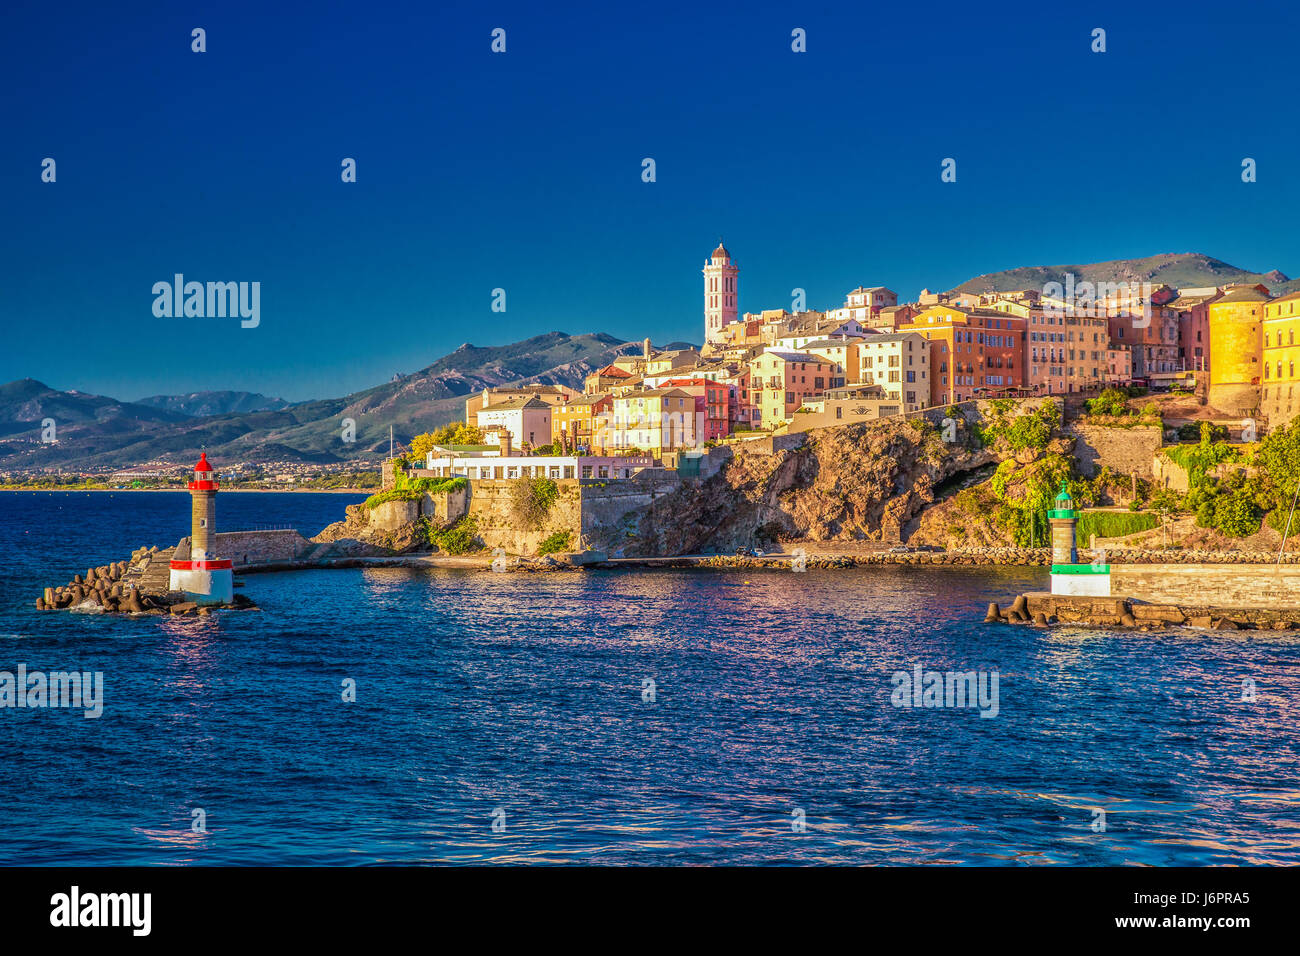 Cafe in the vieux port terra vecchia bastia corsica france stock - View To Bastia Old City Center Lighthouse And Harbour Bastia Is Second Biggest Town